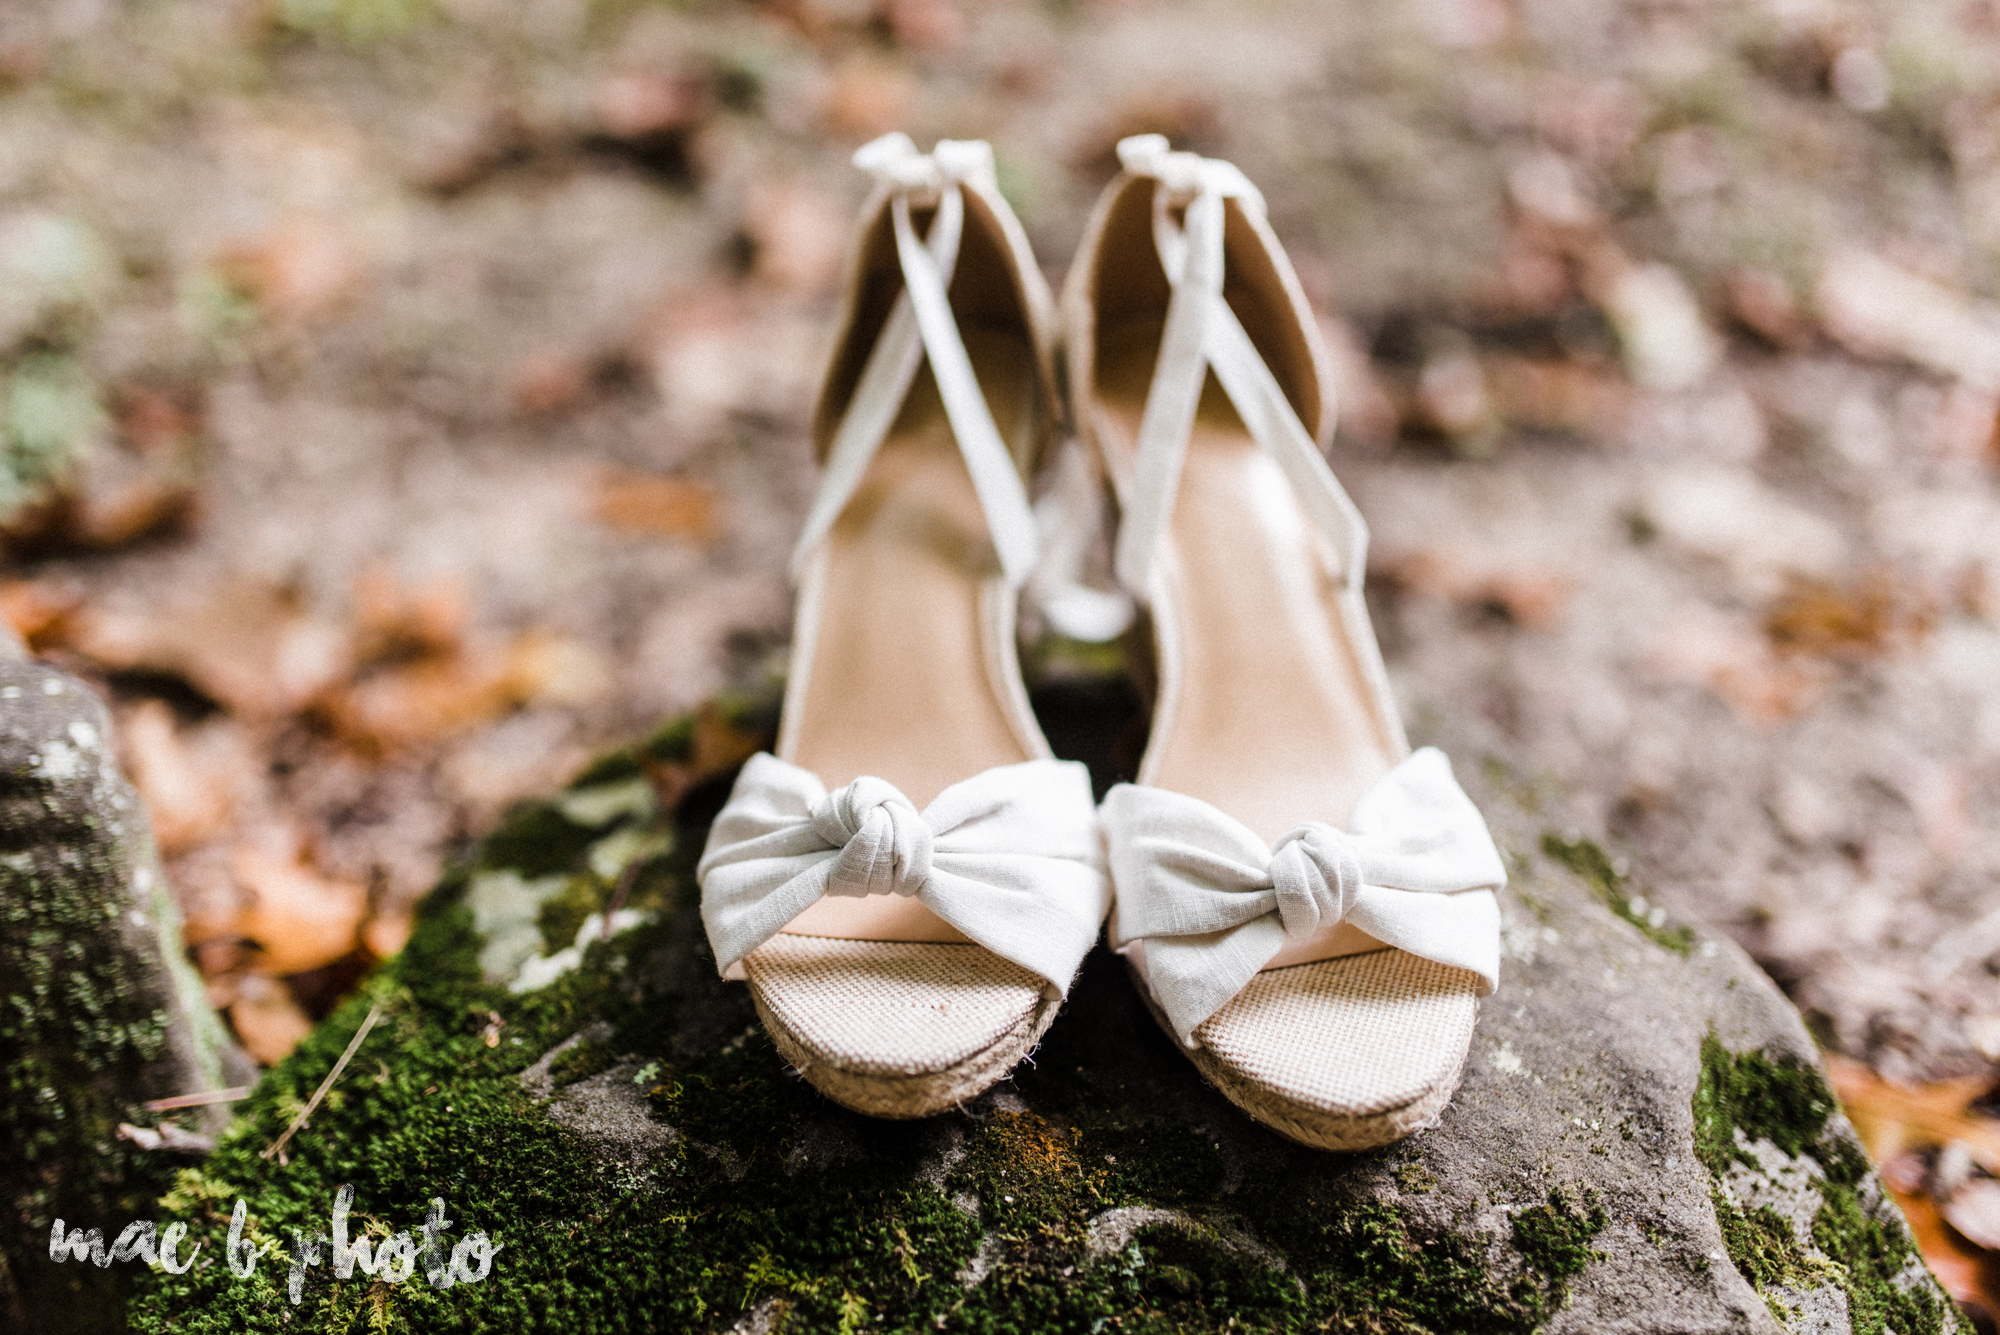 bobbi and pat's intimate fall cabin elopement in hocking hills old man's cave and rock house in logan ohio photographed by youngstown wedding photographer mae b photo-6.jpg